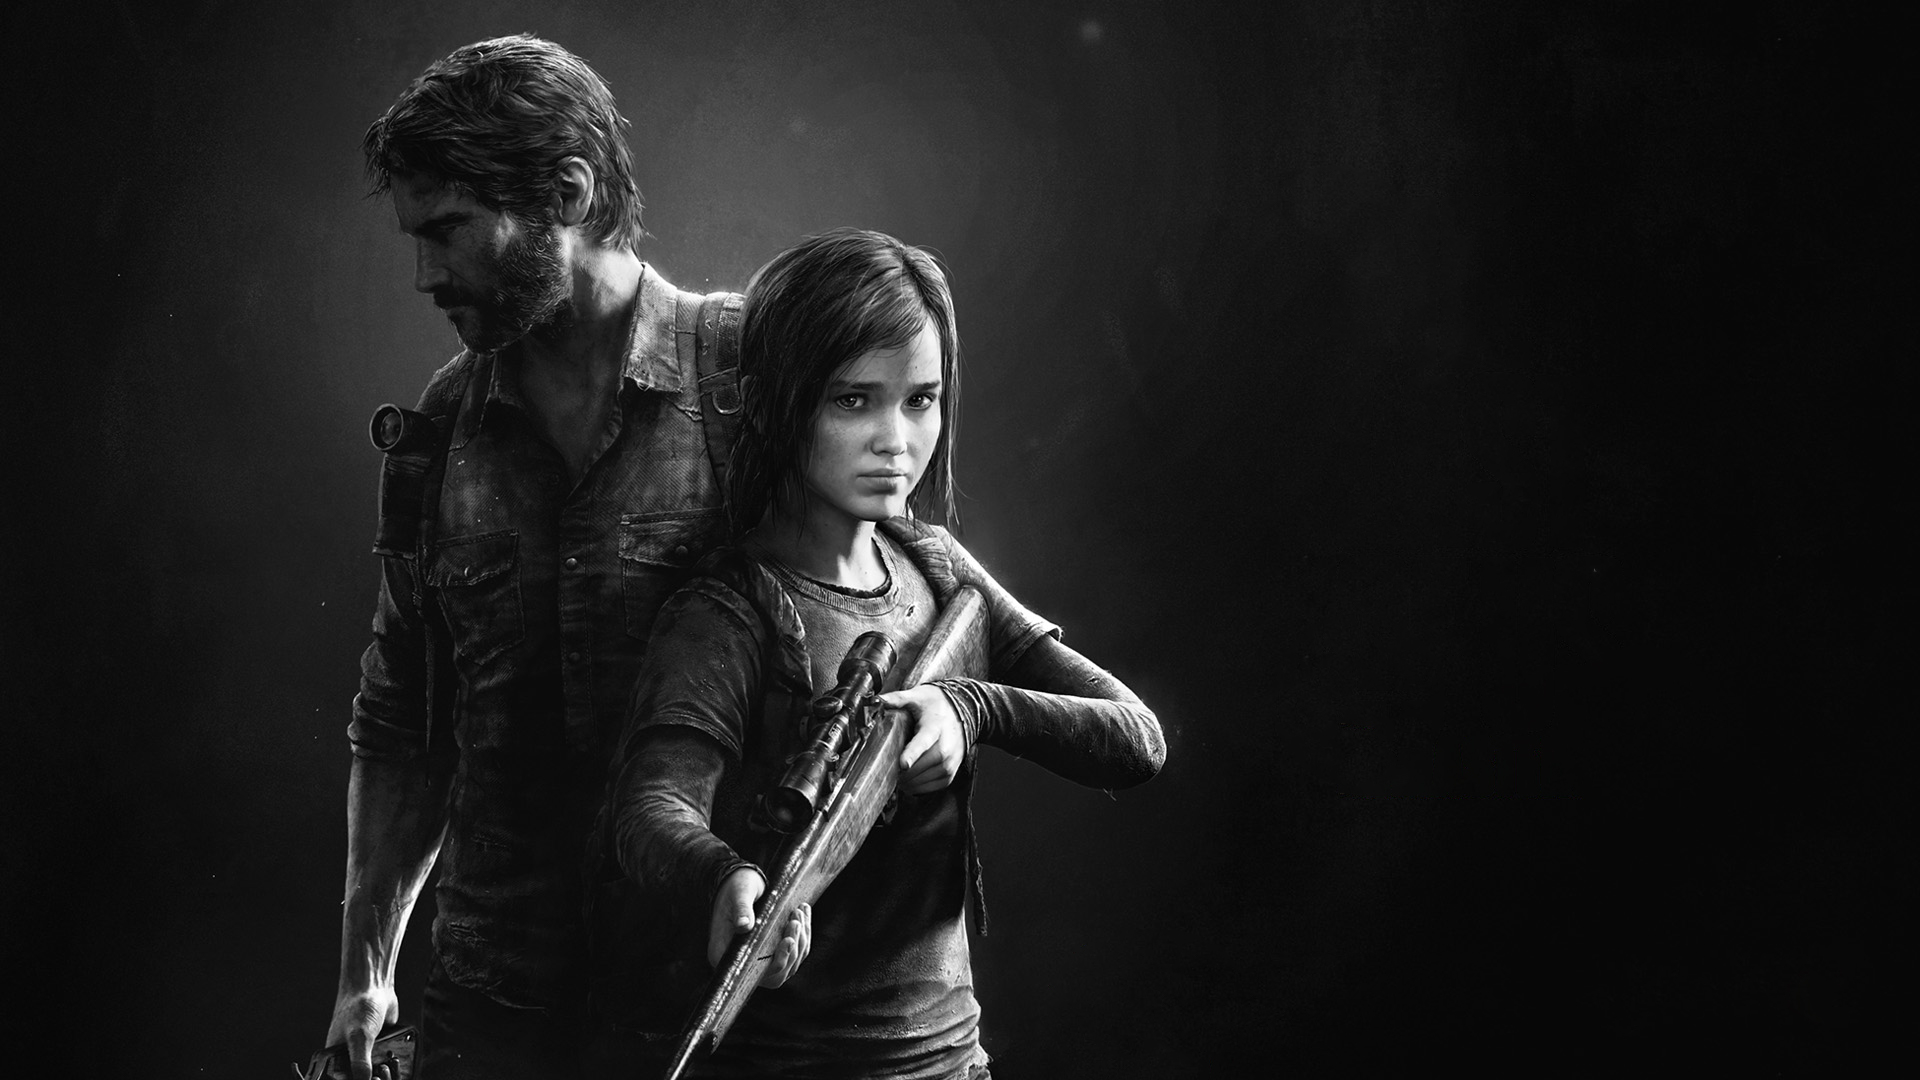 The Last Of Us Remastered Wallpaper Hd Games 4k Wallpapers